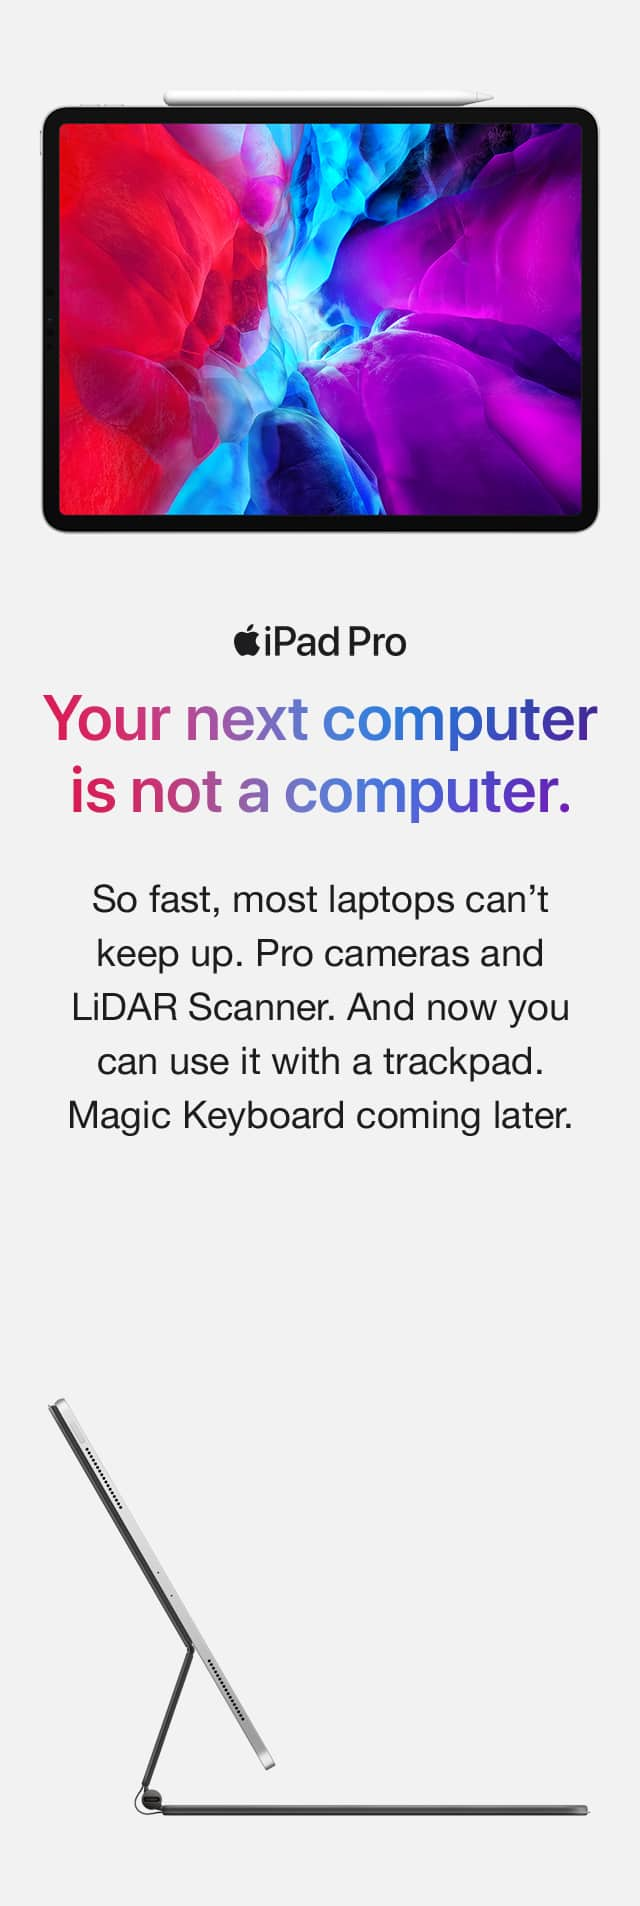 iPad Pro. Your next computer is not a computer. So fast, most laptops can't keep up. Pro cameras and a LiDAR Scanner. And now you can use it with a trackpad. Magic Keyboard coming later.